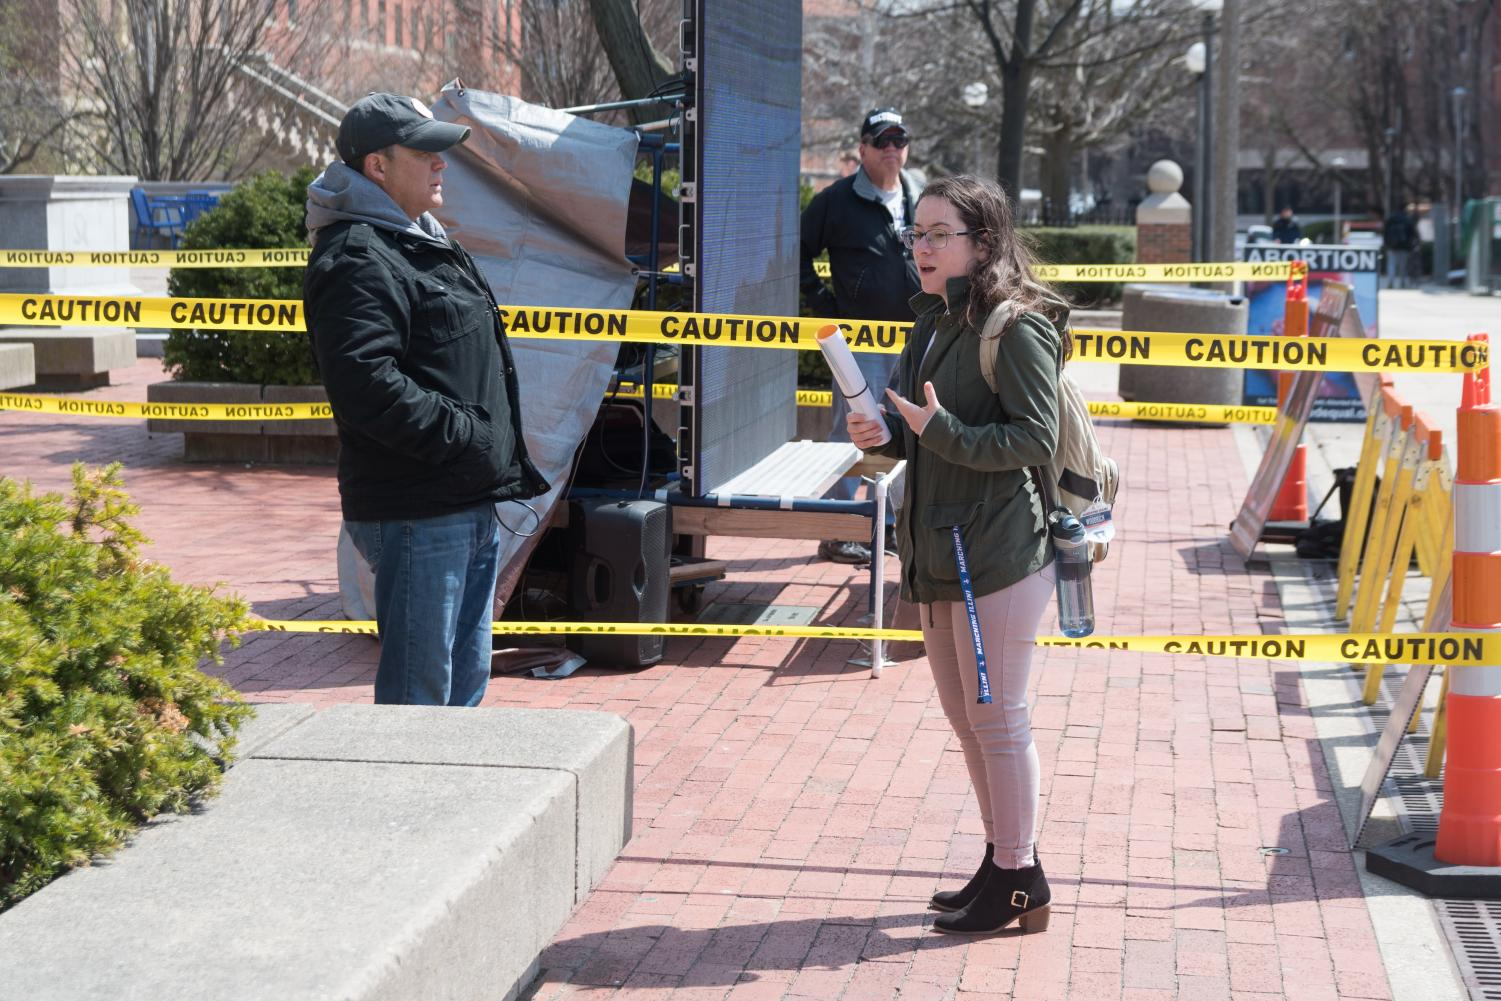 A University student challenges the pro-life activists' methods during a protest outside the Illini Union on Wednesday.